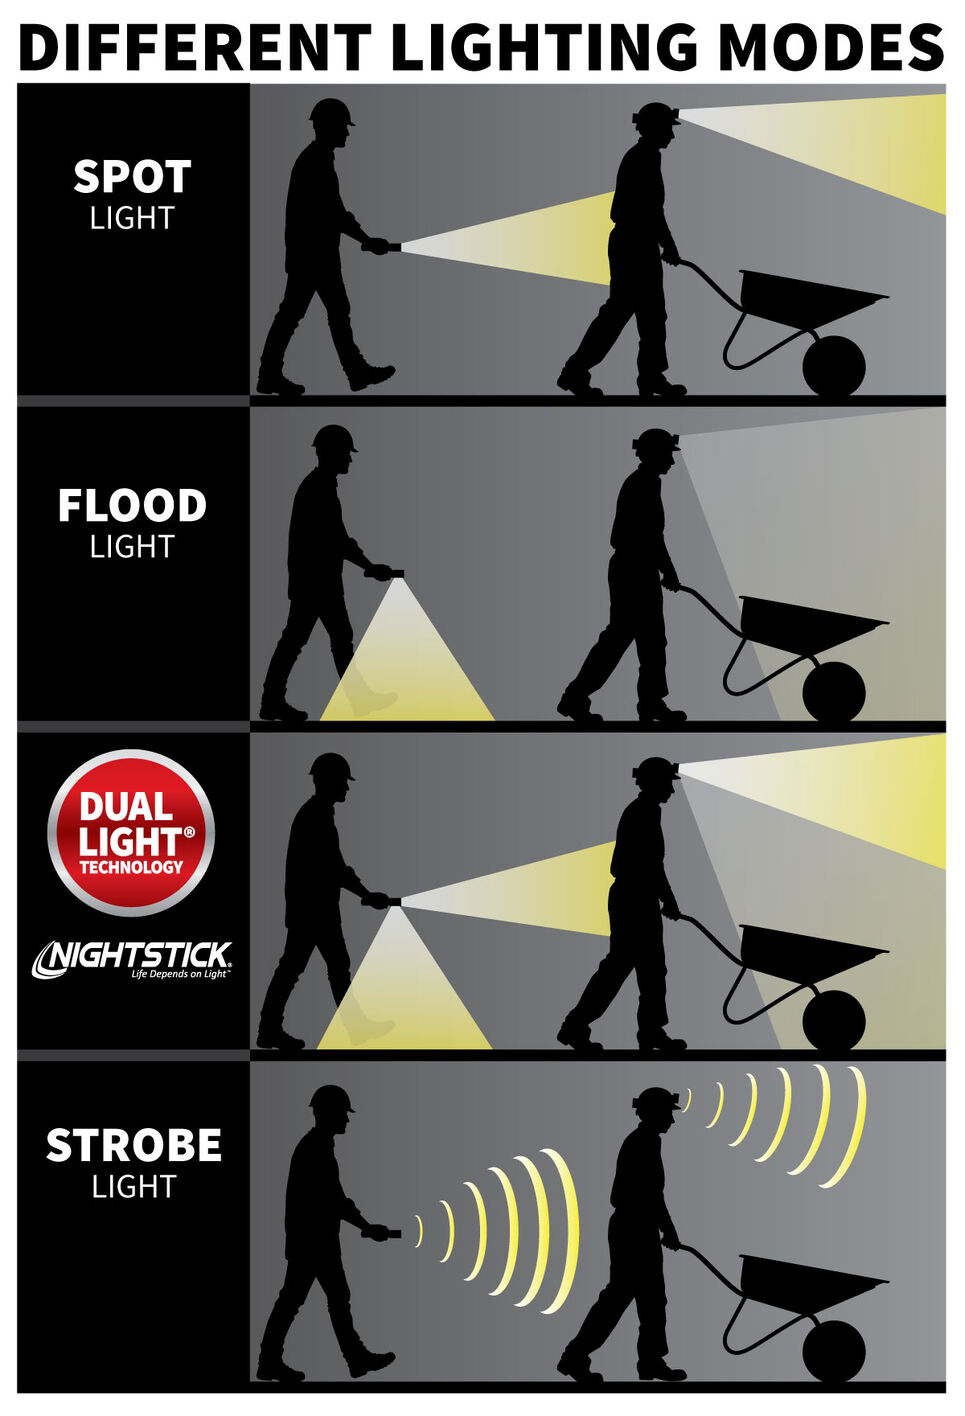 Overview of different types of work lights